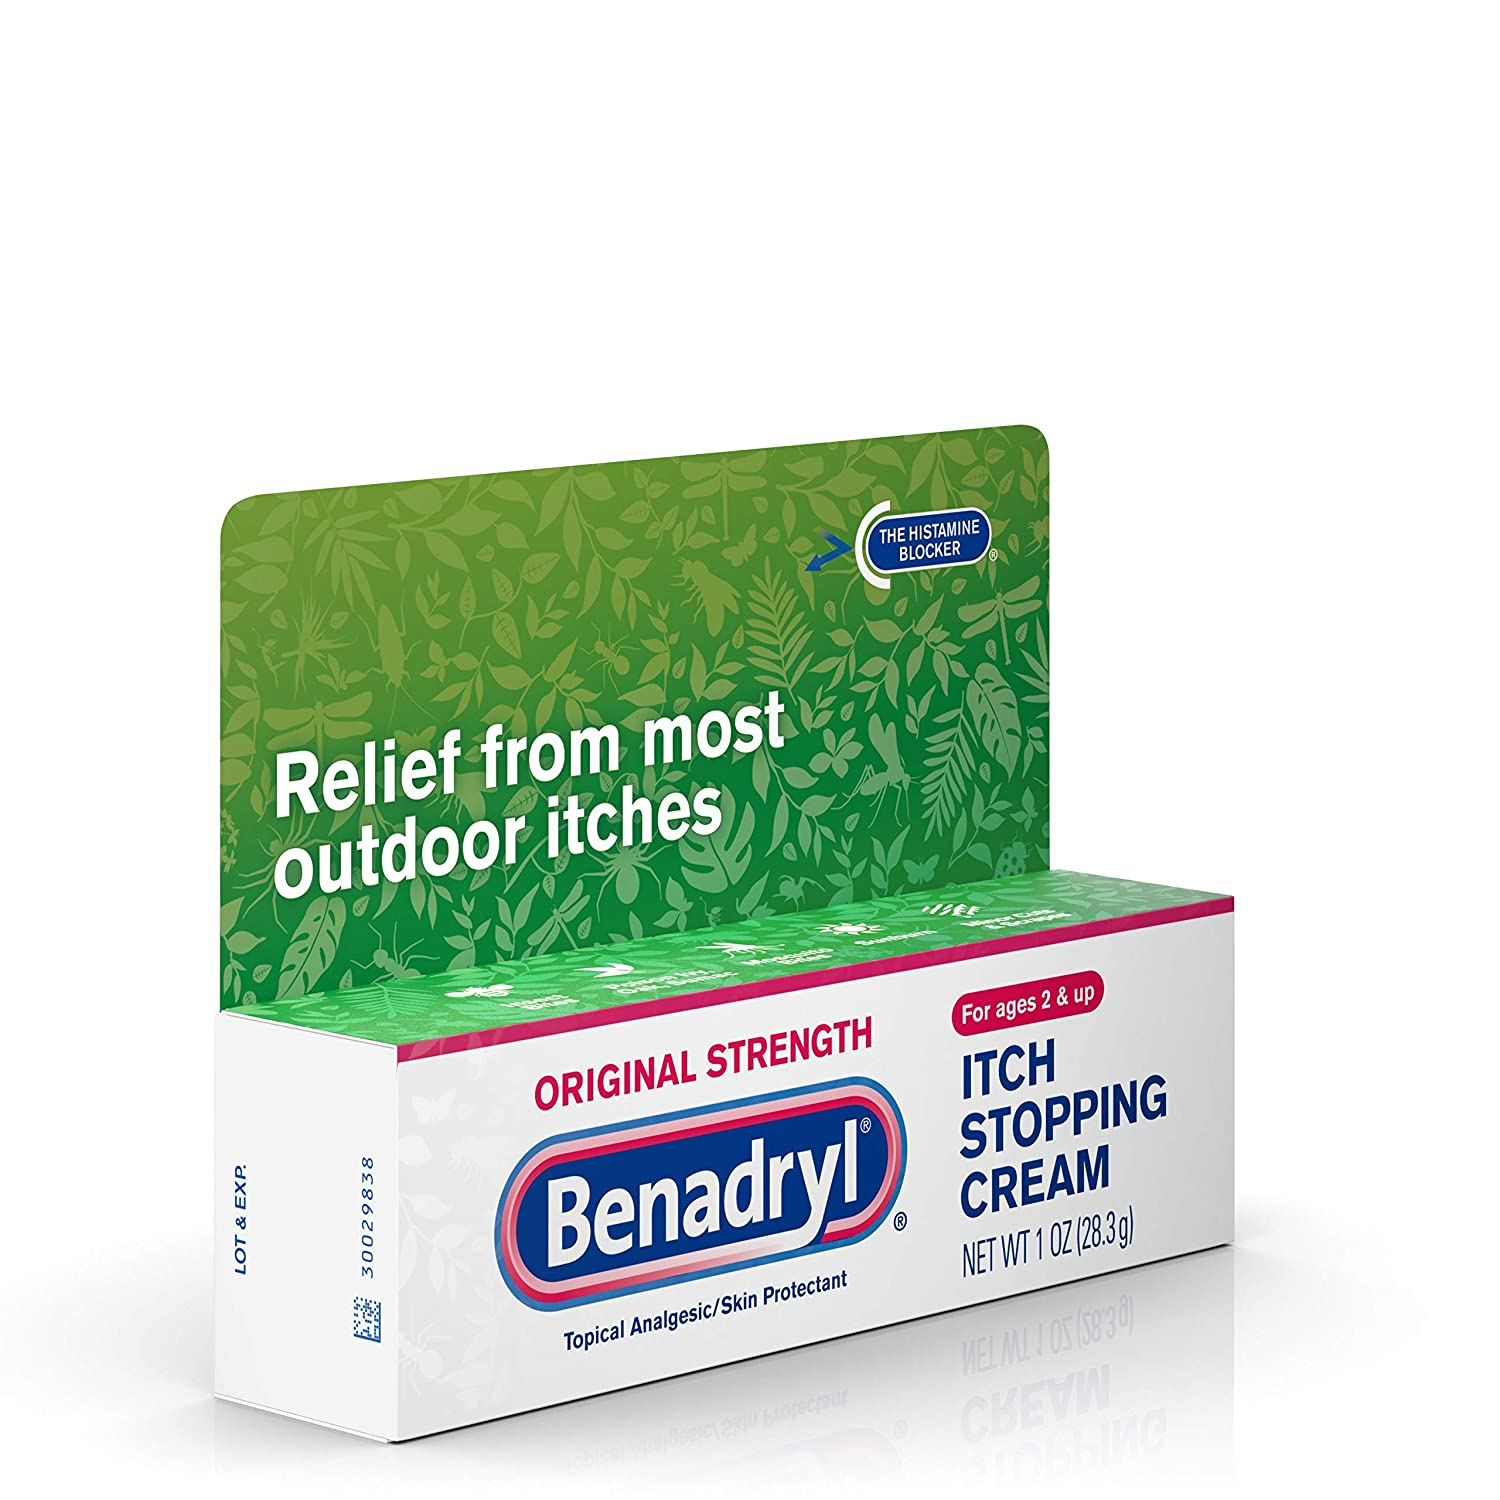 Amazon.com: Benadryl Original Strength Anti-Itch Relief Cream for Most  Outdoor Itches, Topical Analgesic, 1 oz (Pack of 2): Health & Personal Care